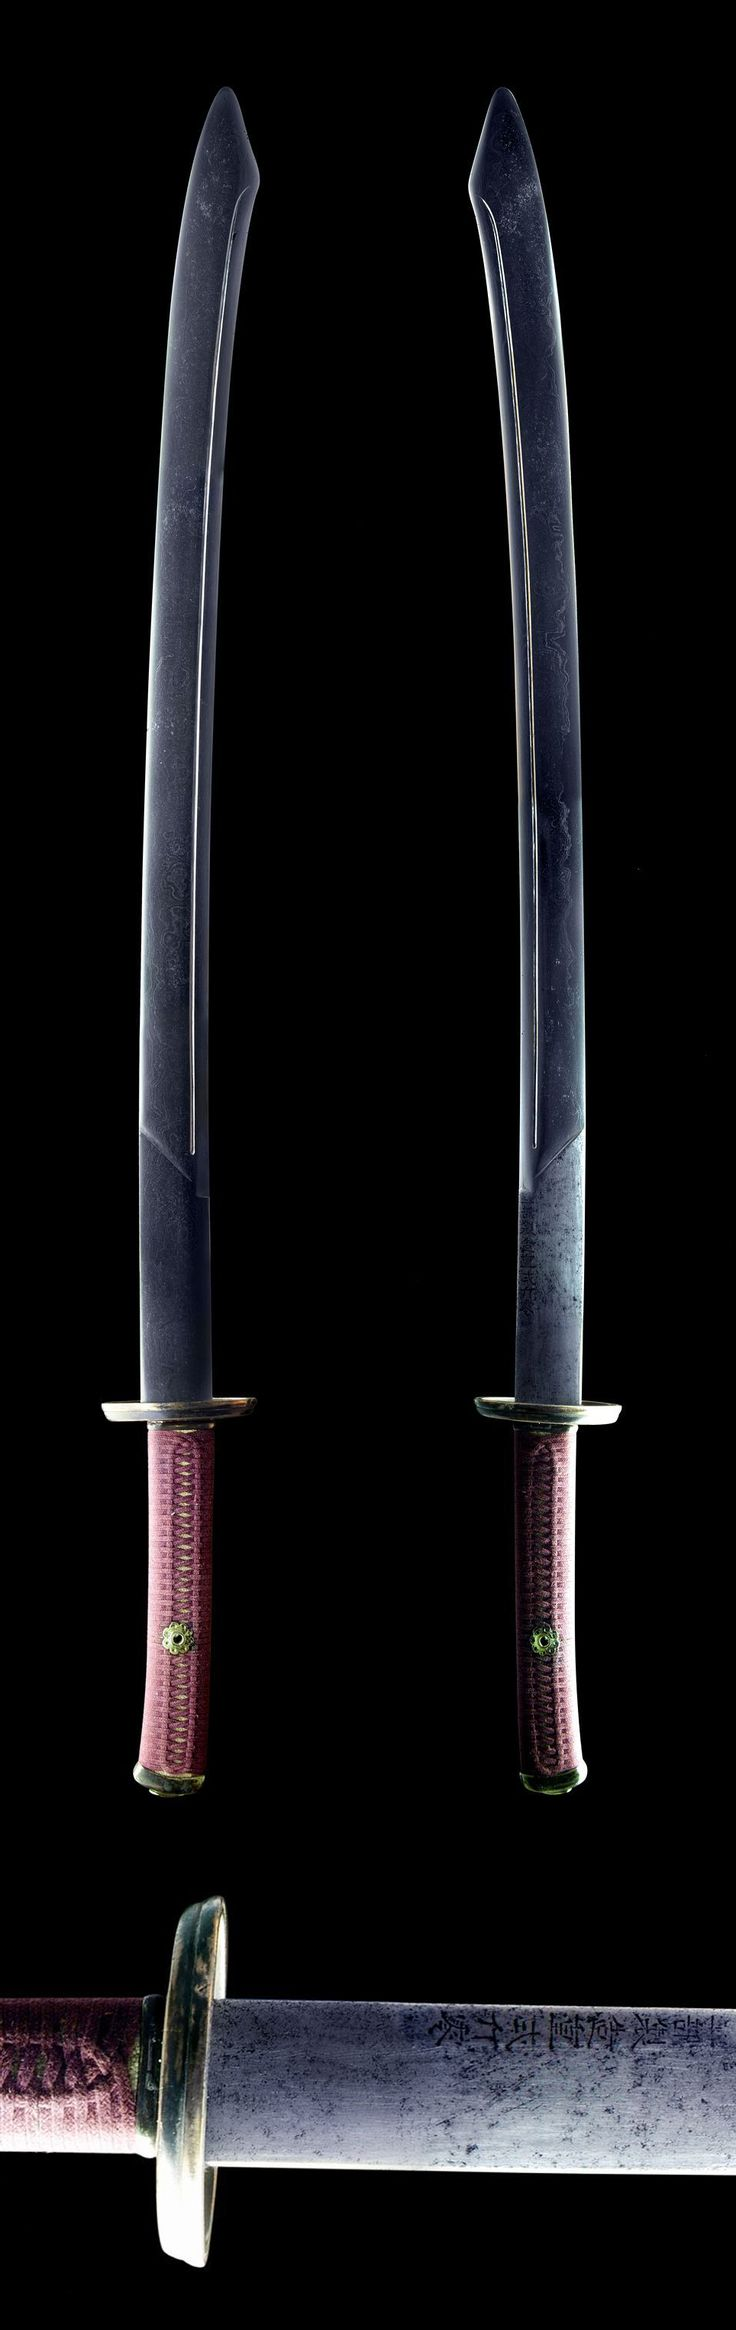 "A resharpened Chinese saber of the Yanchidao (雁翅刀) type, with the inscription ""工部製造重弍斤零 (Made by Ministry of Works, weigh two catties)"" on the blade. Possibly late Ming period."